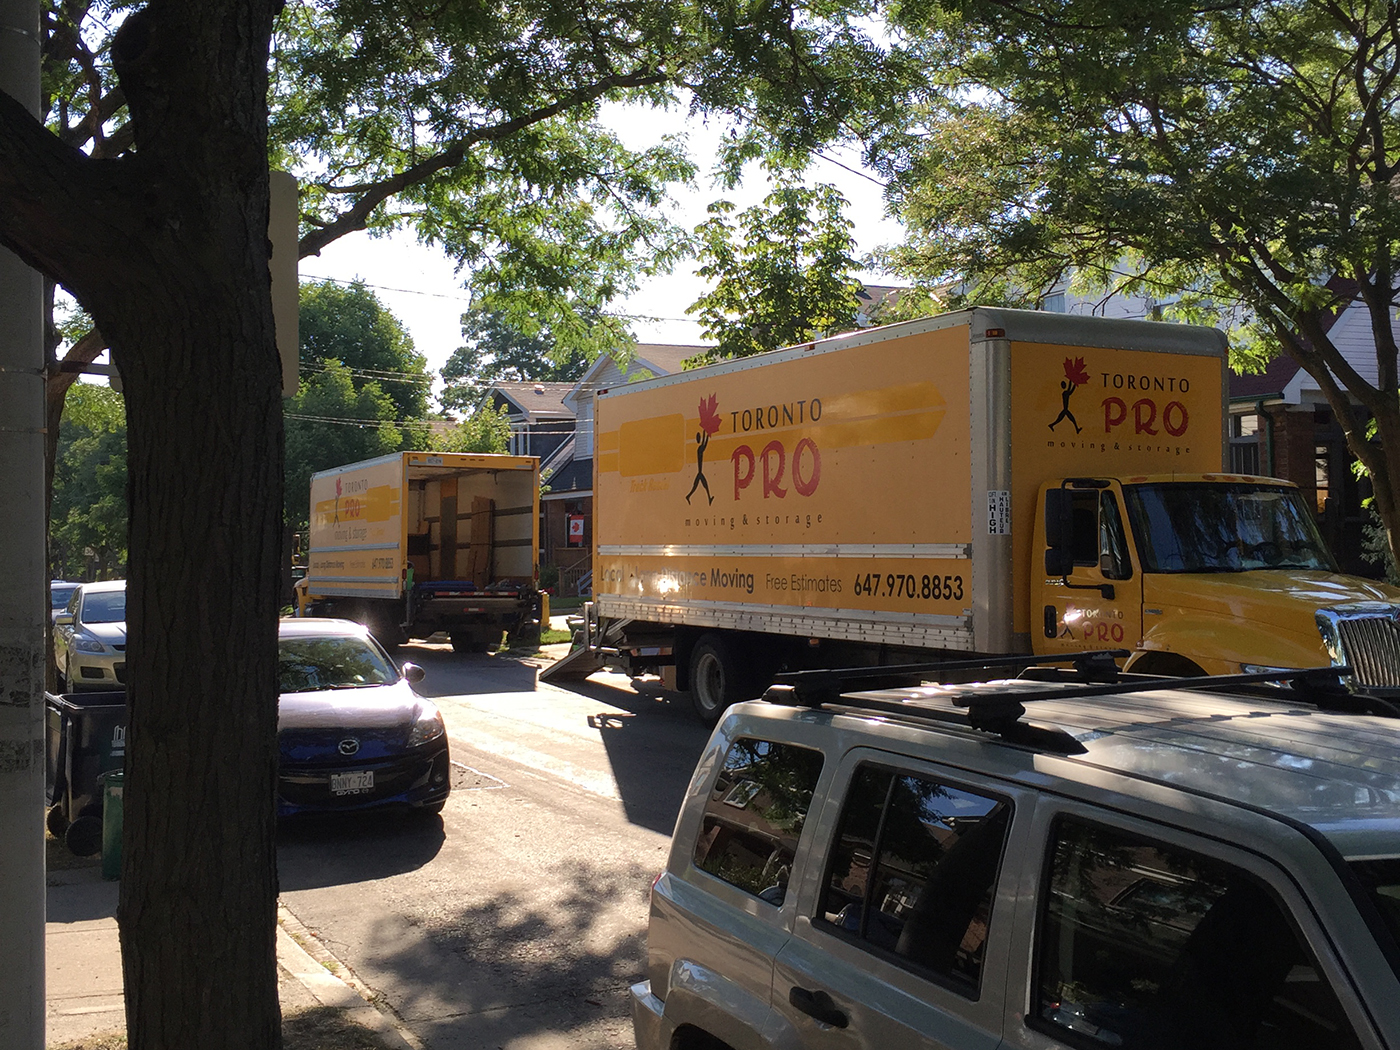 Moving Company Toronto Toronto Pro Moving Trucks